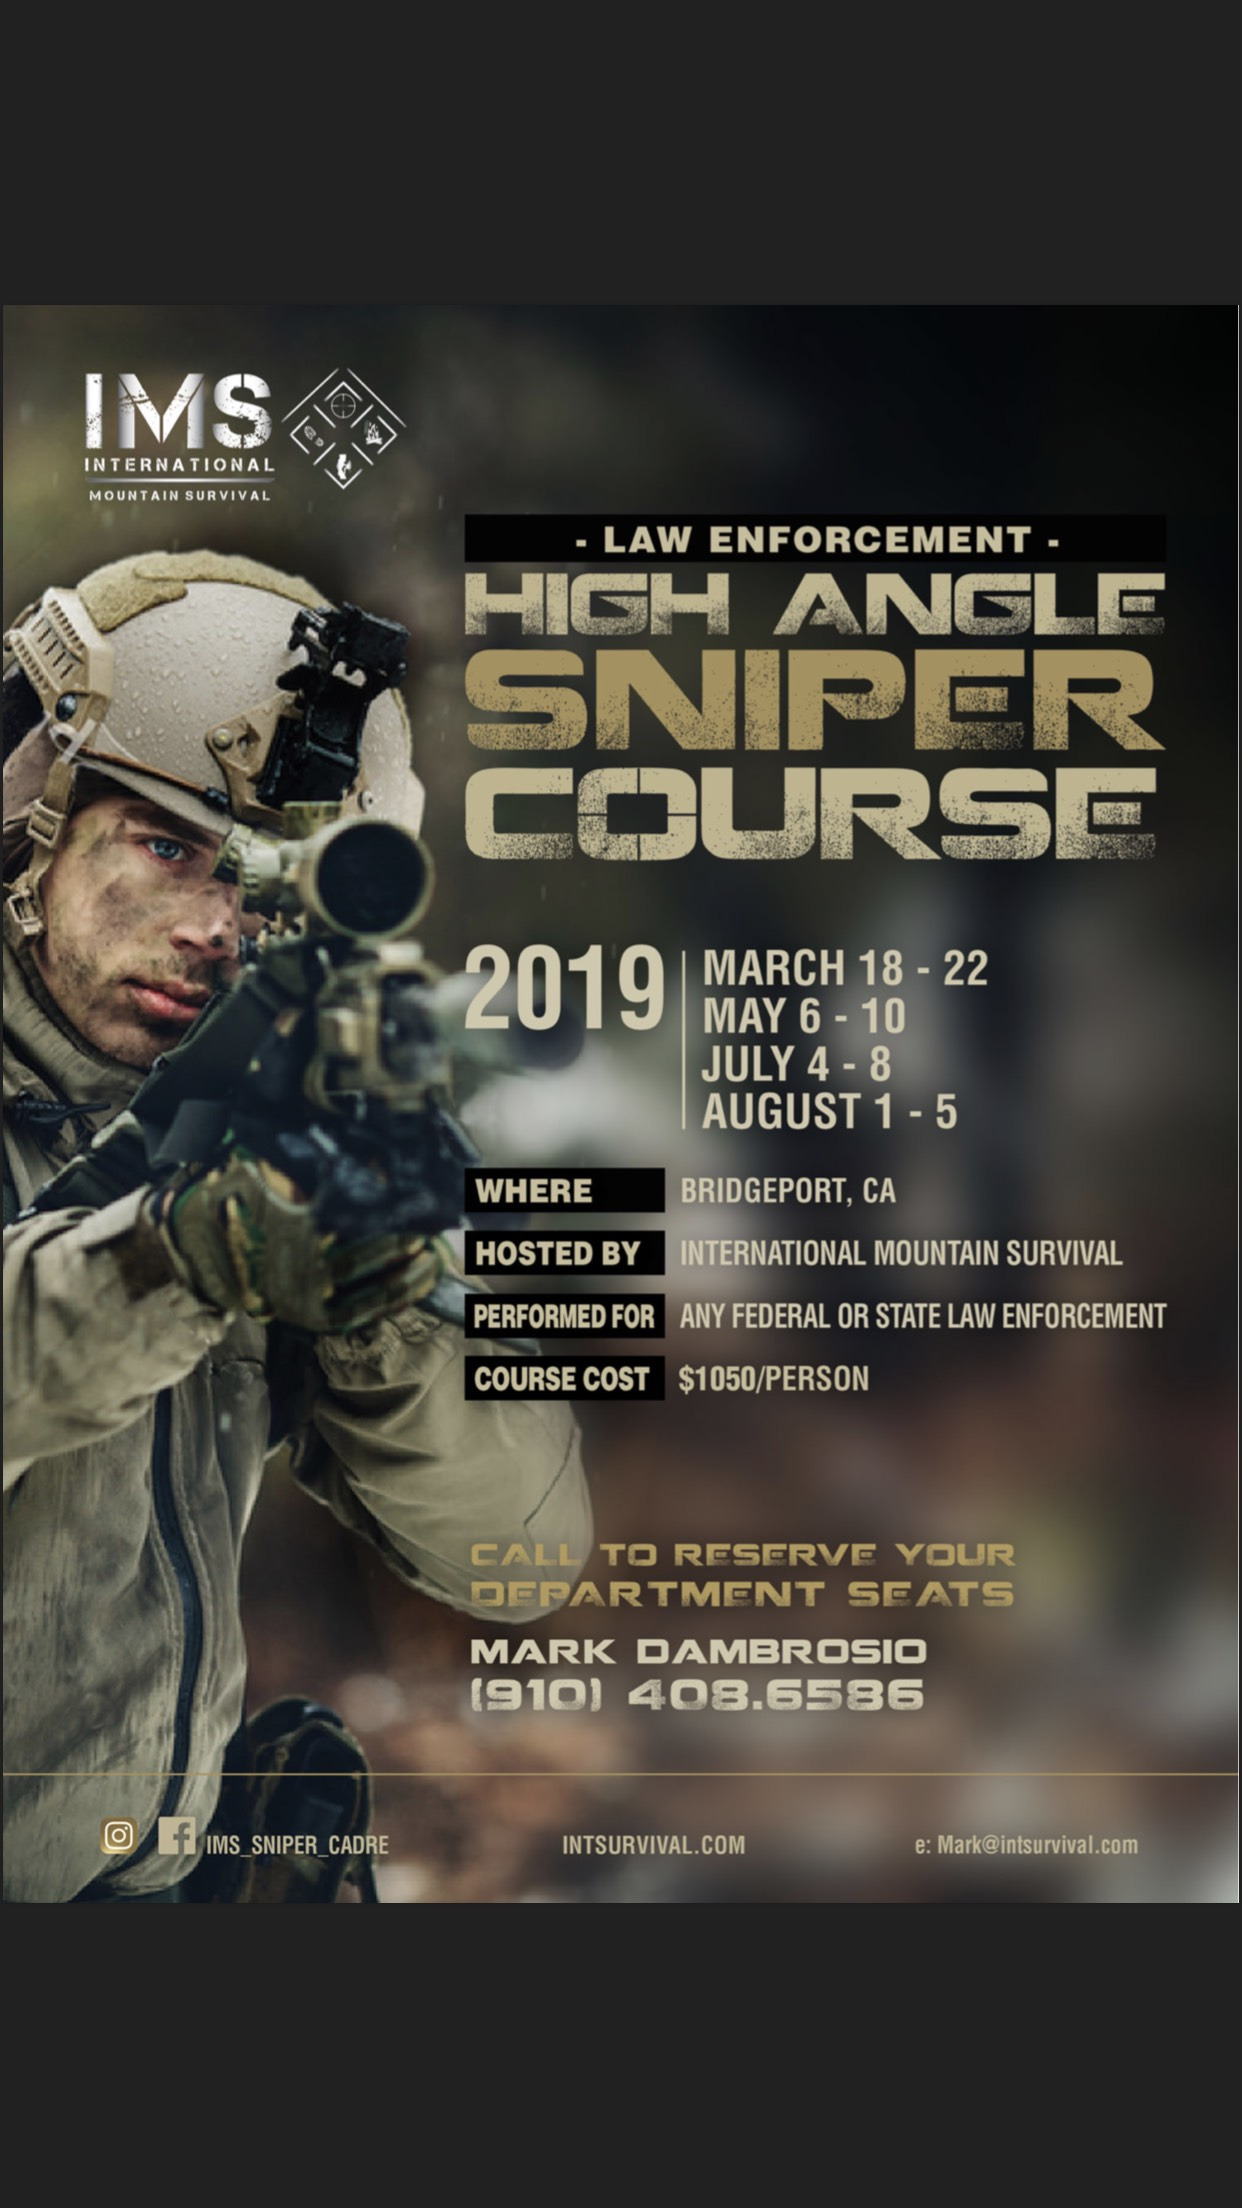 LAW ENFORCEMENT HIGH ANGLE SNIPER - Course conducted in Bridgeport Ca.Course cost is $1050 per student for the 5 days.For custom courses or for us to come to you, see below.